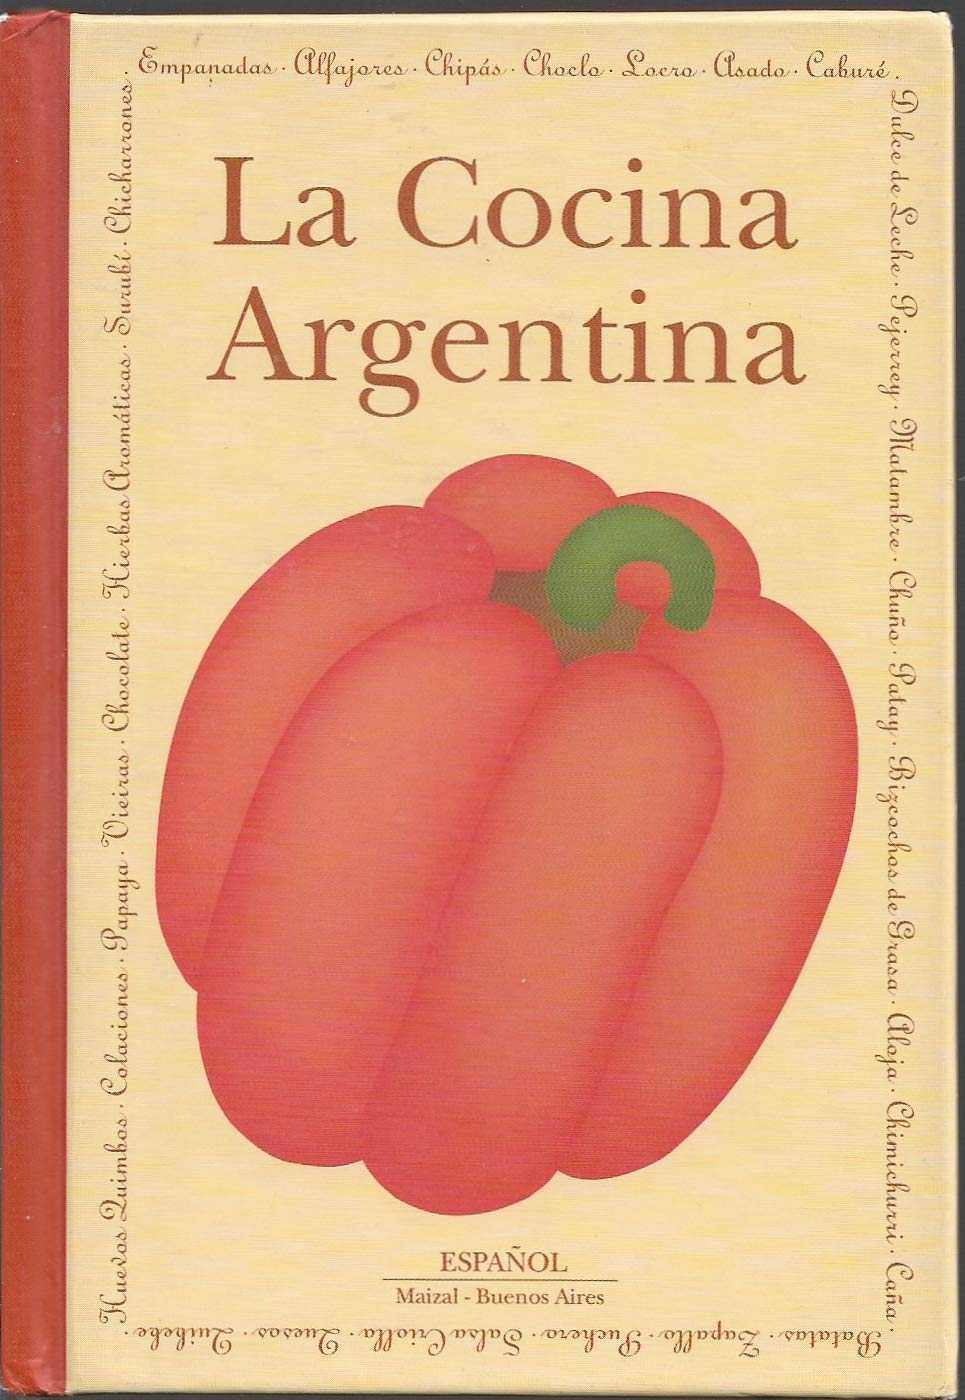 La cocina Argentina/ The Argentinean cooking (Spanish and Spanish Edition) (Spanish) Hardcover – April 1, 2003